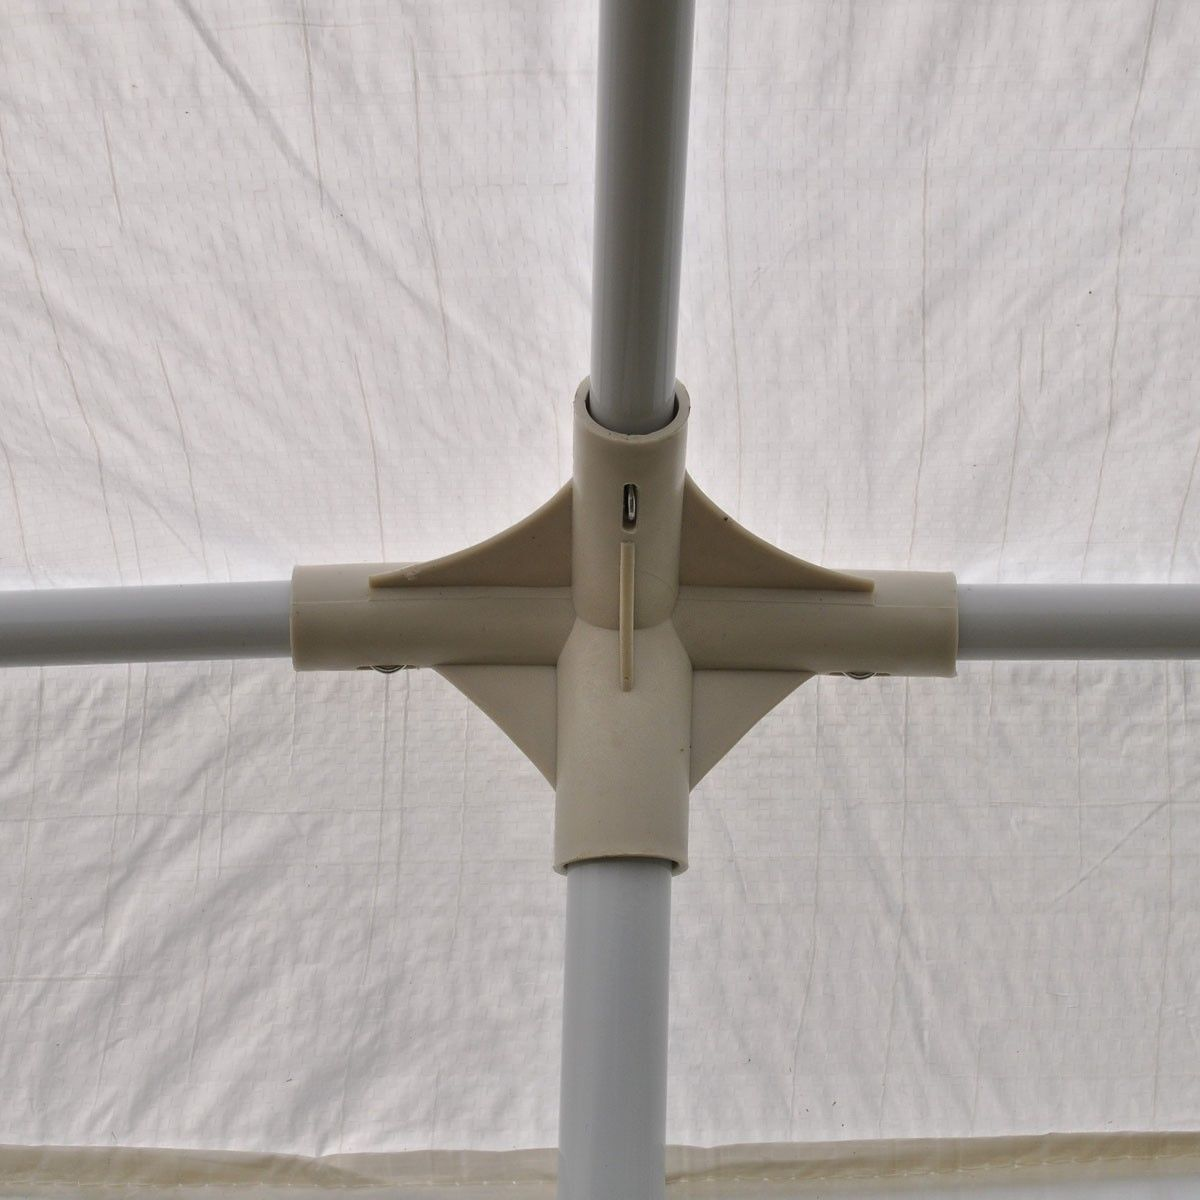 Gymax White Wedding Tent 10'x30'Outdoor Party Canopy Events - image 5 of 10